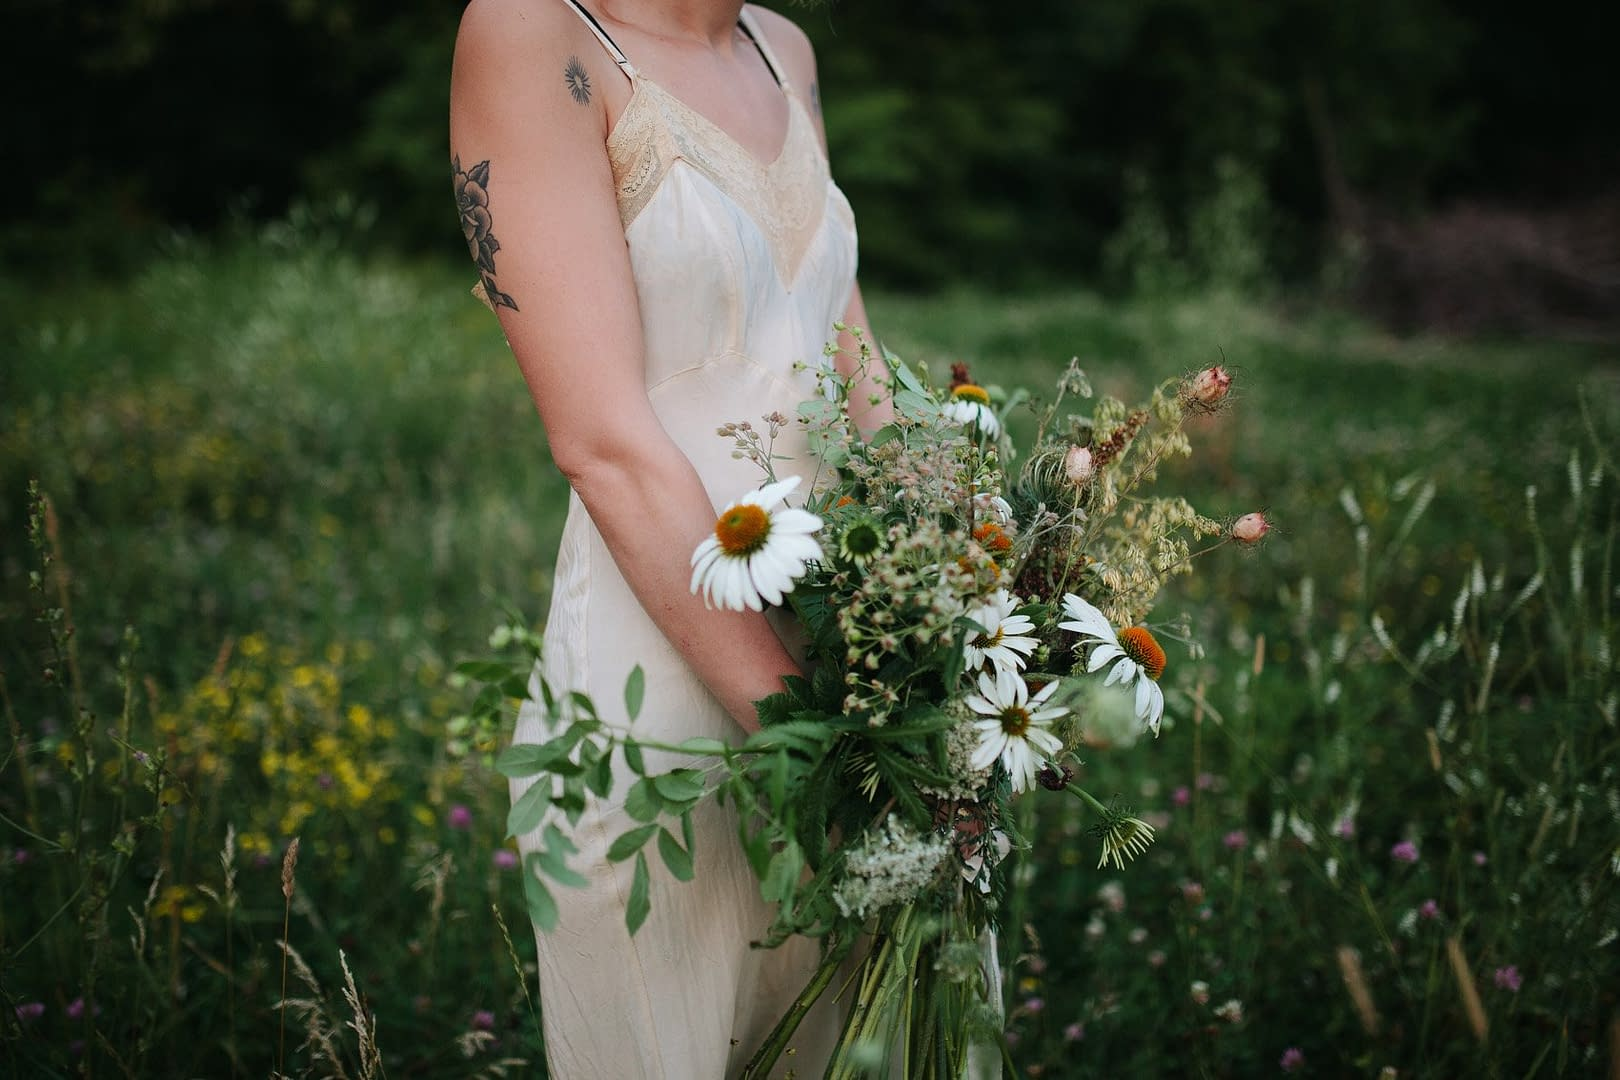 A boho summer bridal bouquet of August flowers in a neutral color palette by Nectar and Root, Vermont wedding florist.